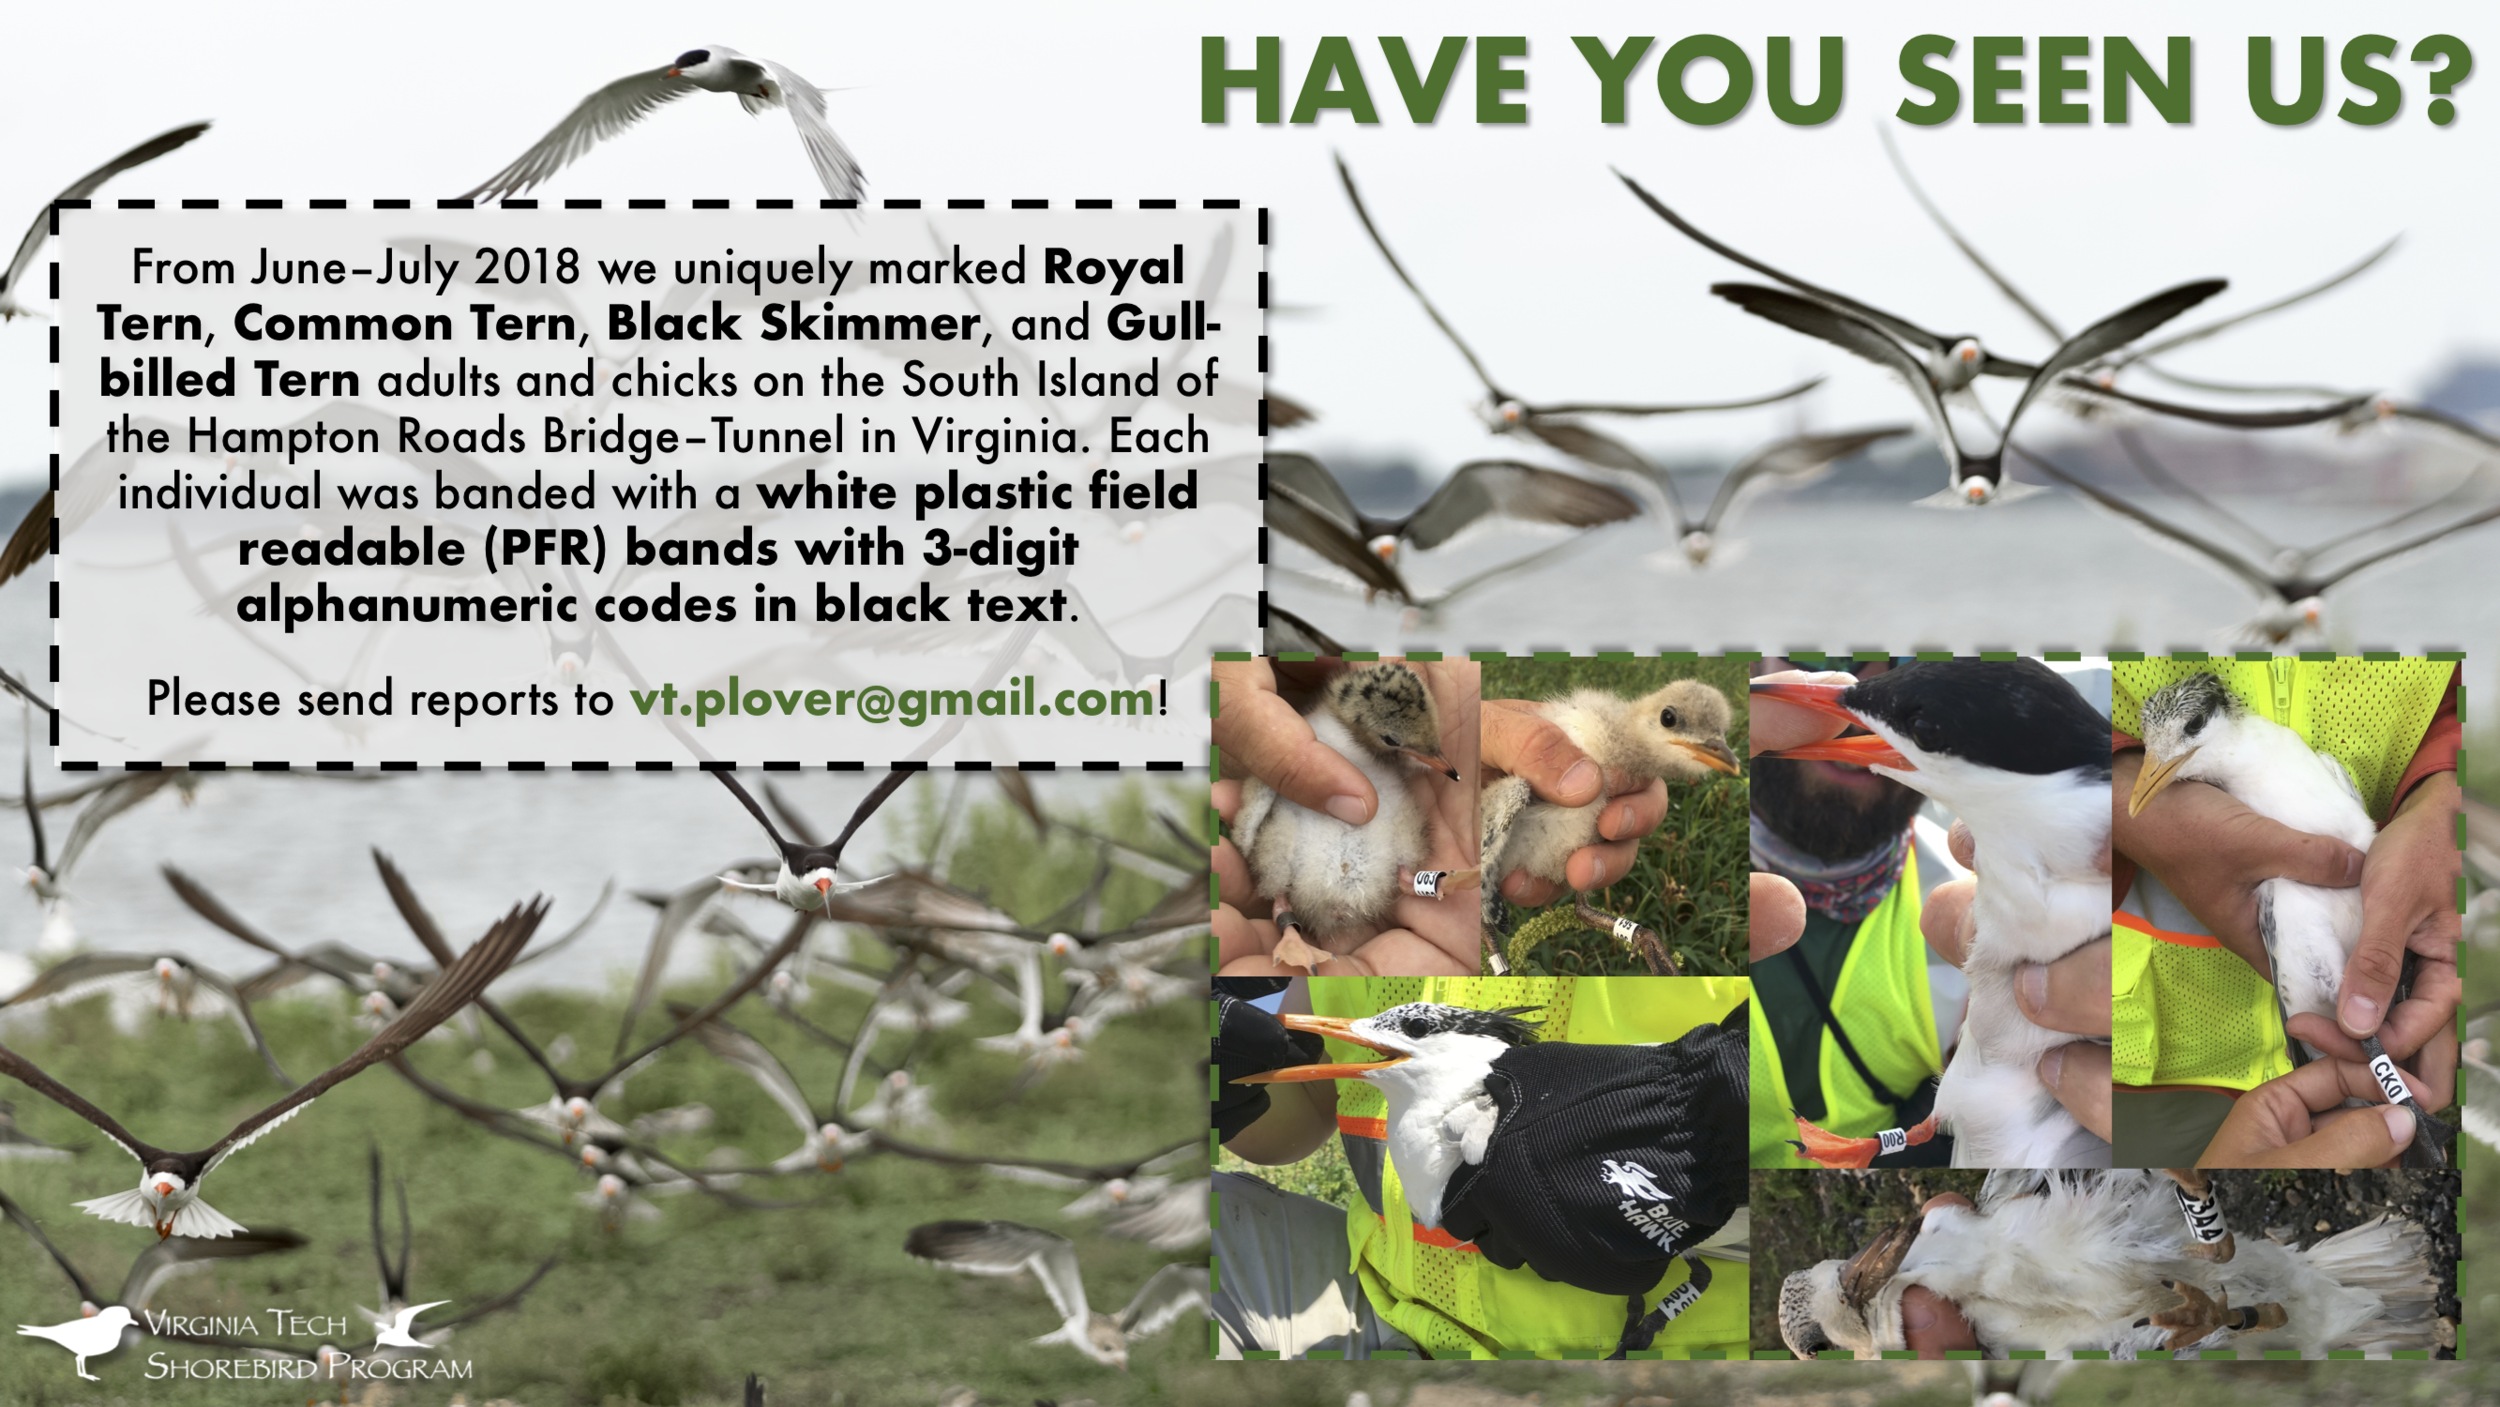 Image 2  An example of our tern and skimmer banding scheme used in Virginia in 2018